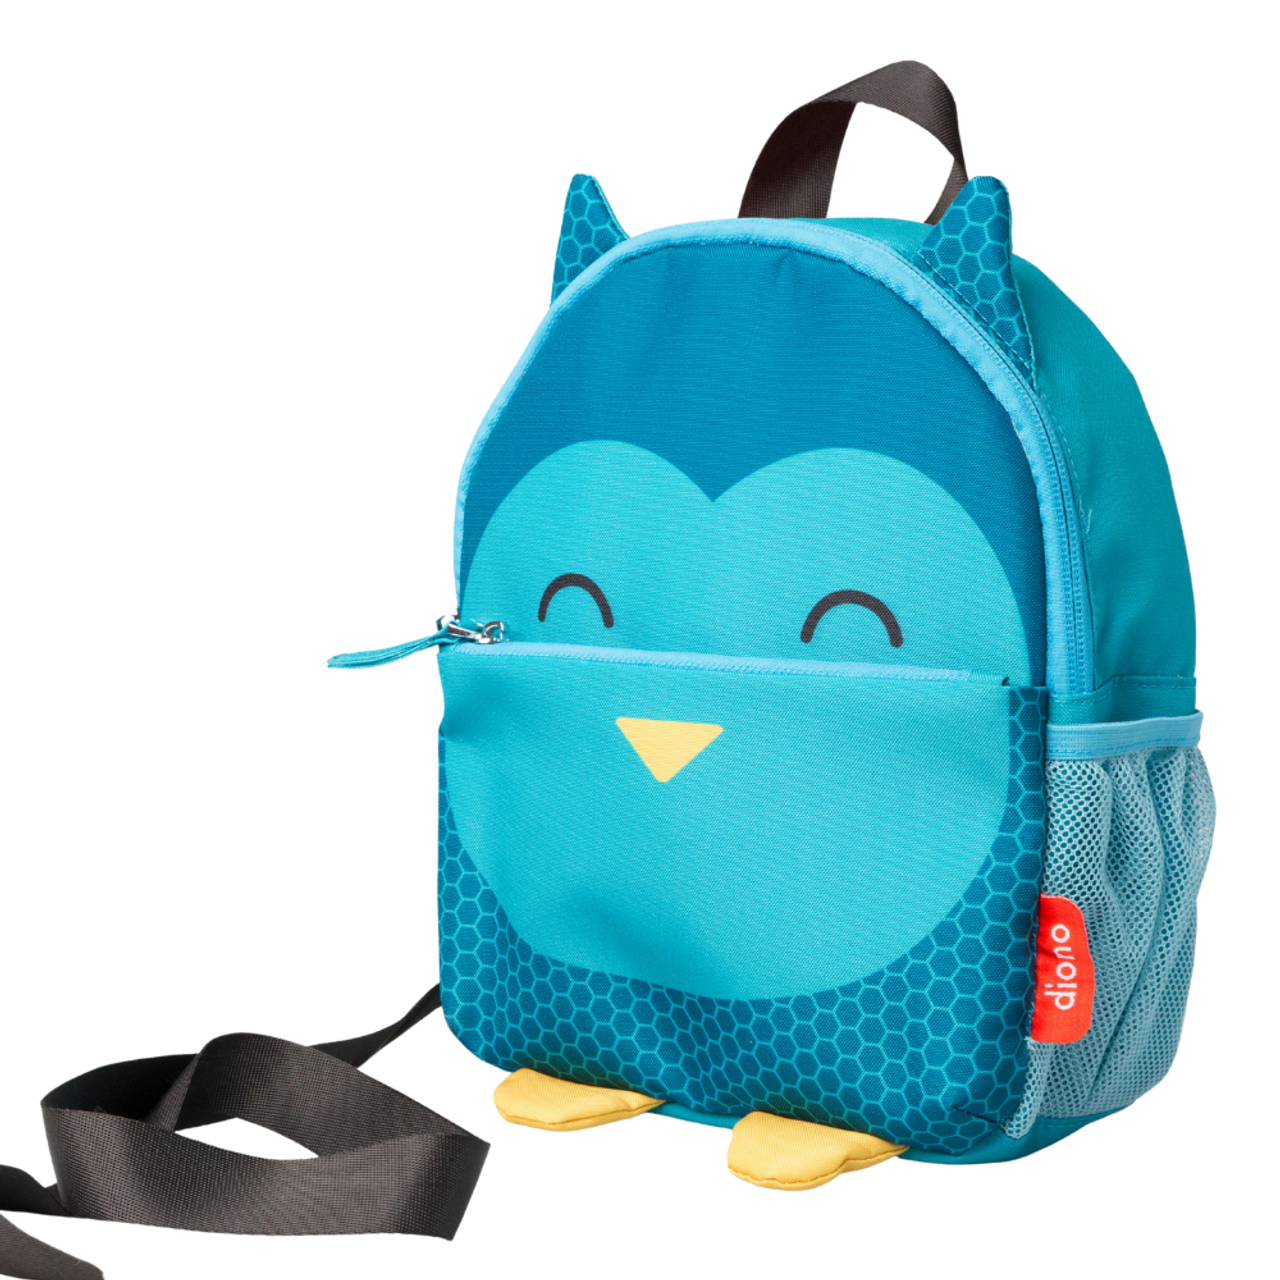 Padded Shoulder Straps for Child Comfort Toddler Reins Harness for Child Safety Diono Bear Character Kids Mini Backpack Full Zip Backpack with Pocket and Handle